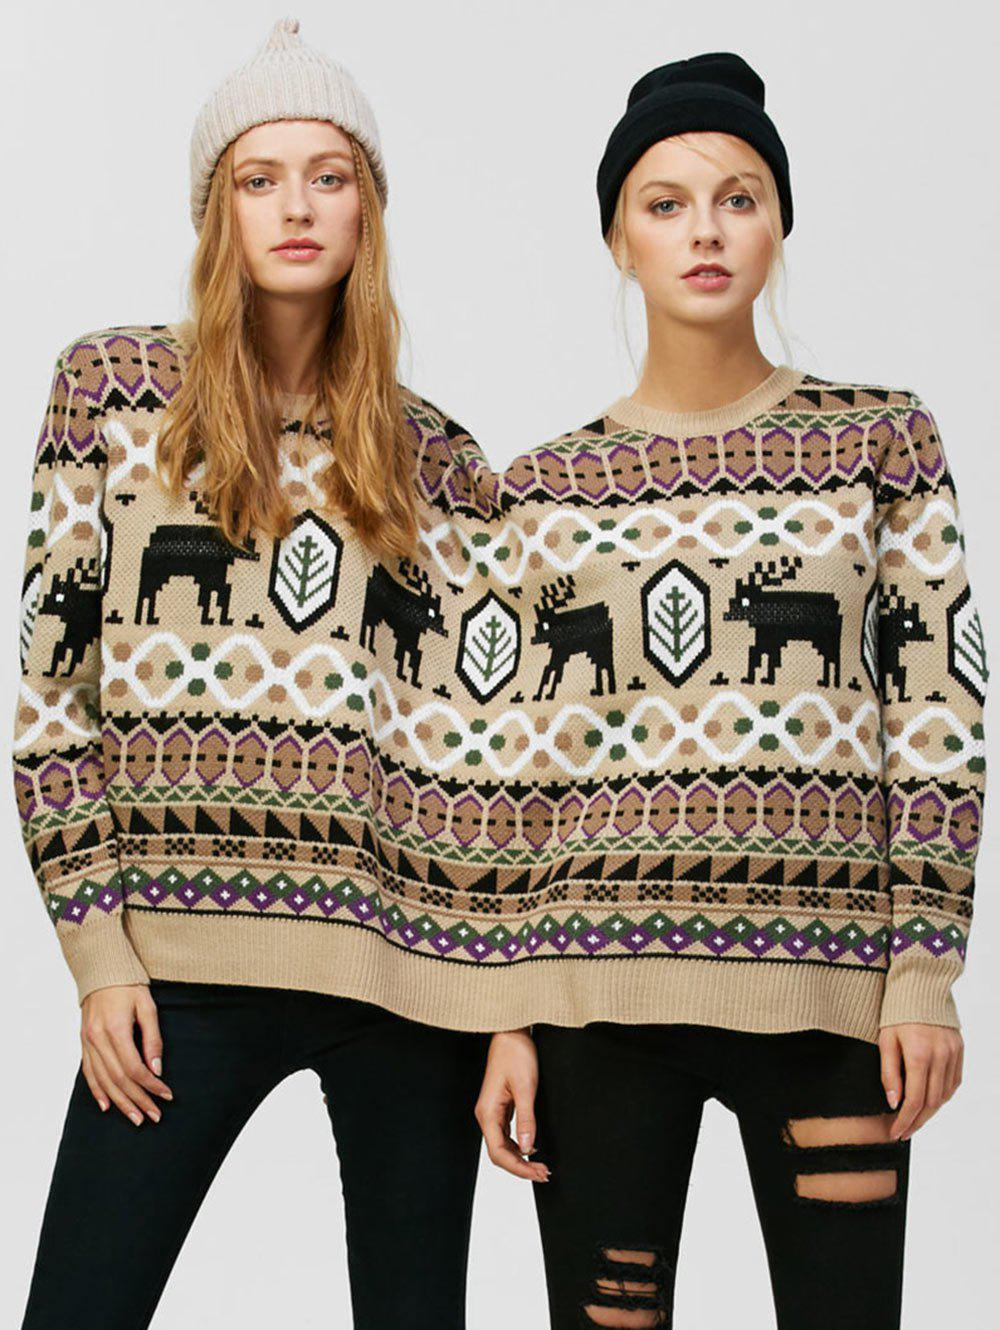 Hot Reindeer Two Person Christmas Sweater